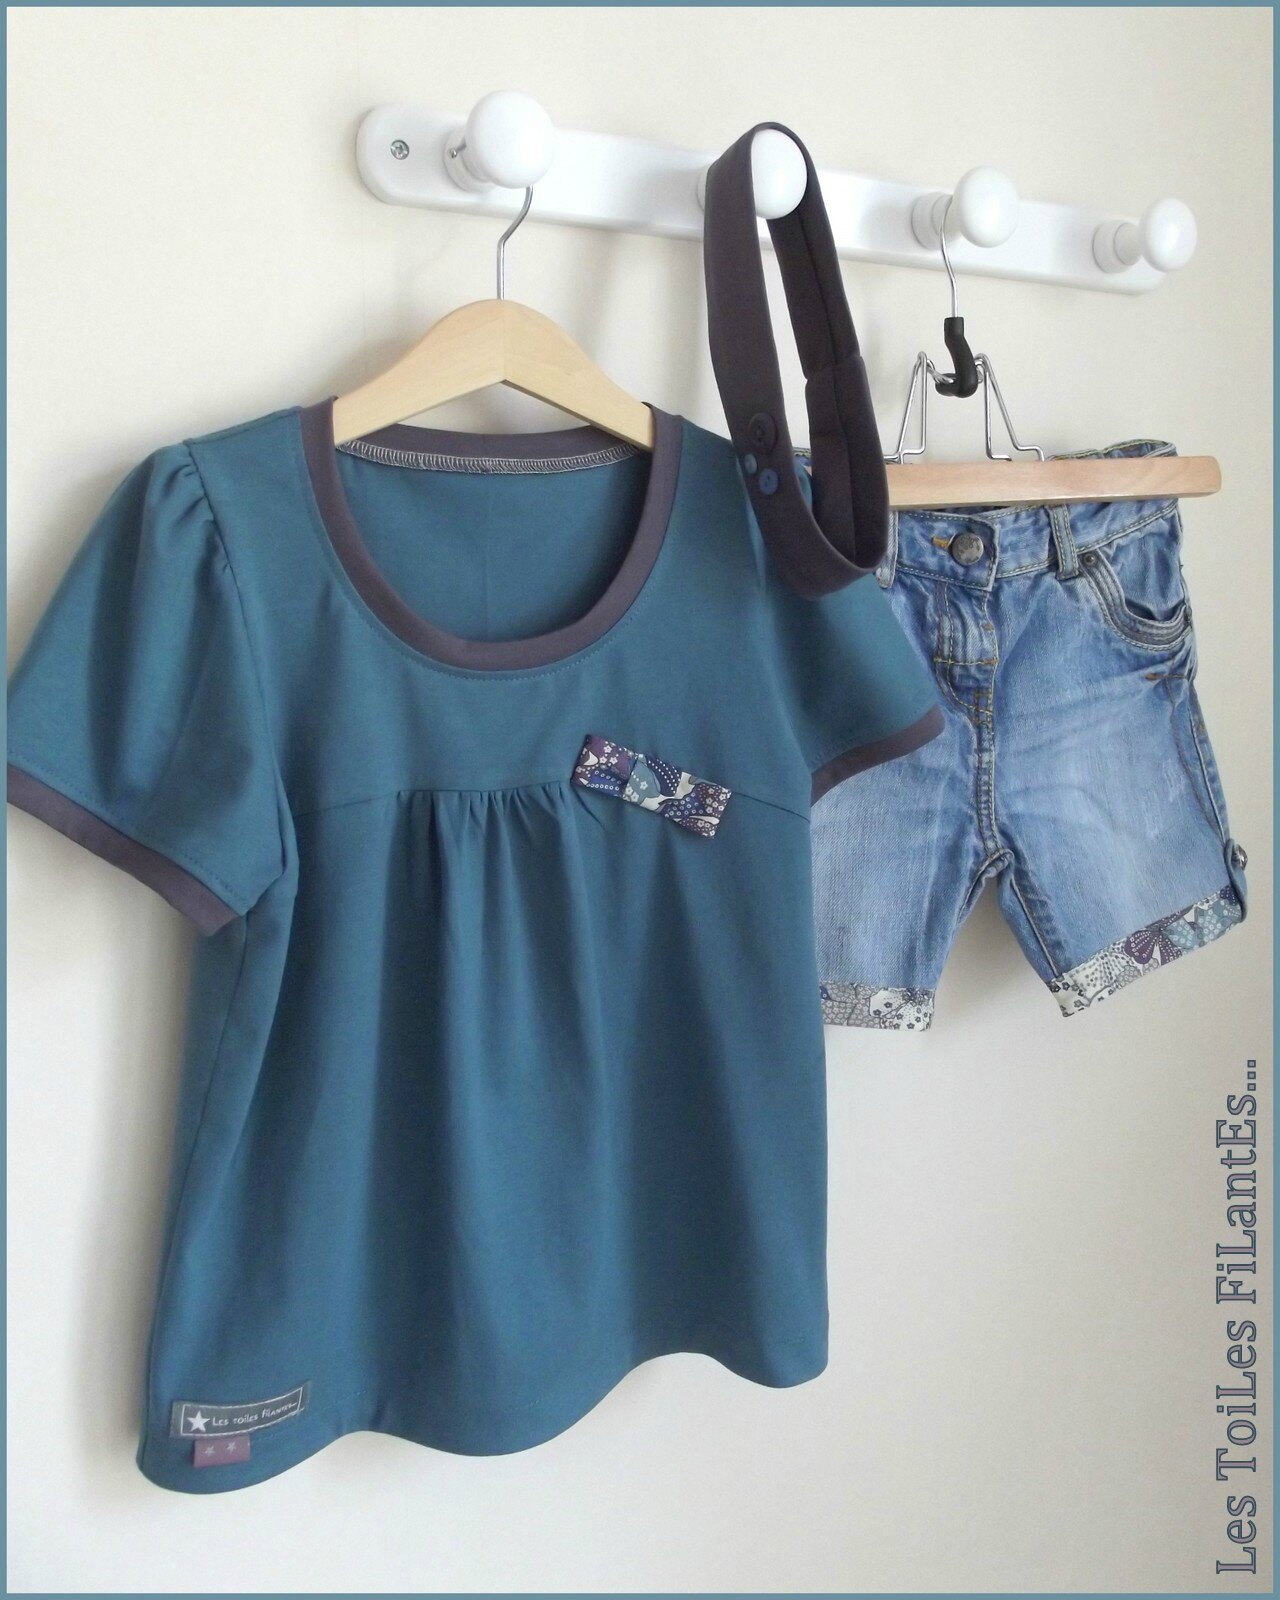 Transformation jeans et tee-shirt assorti Delphine11